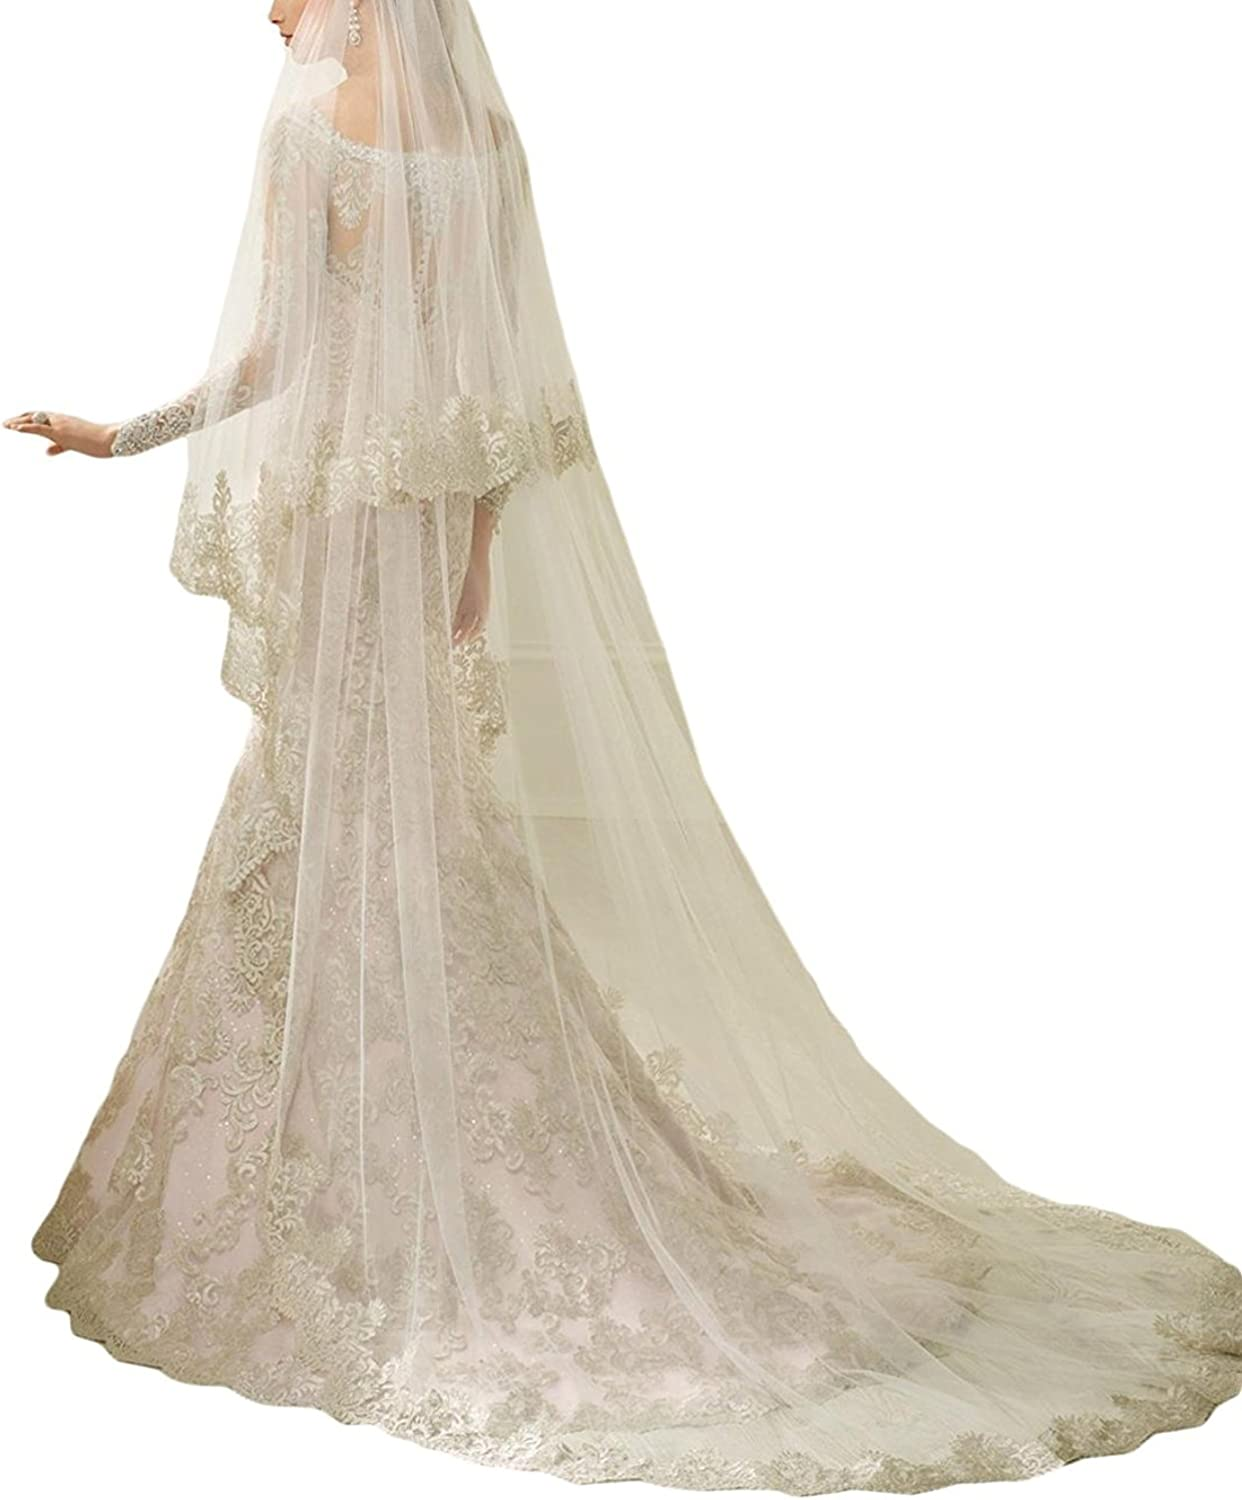 EllieHouse Women's 2 Tier Lace Wedding Bridal Veil With Comb S19